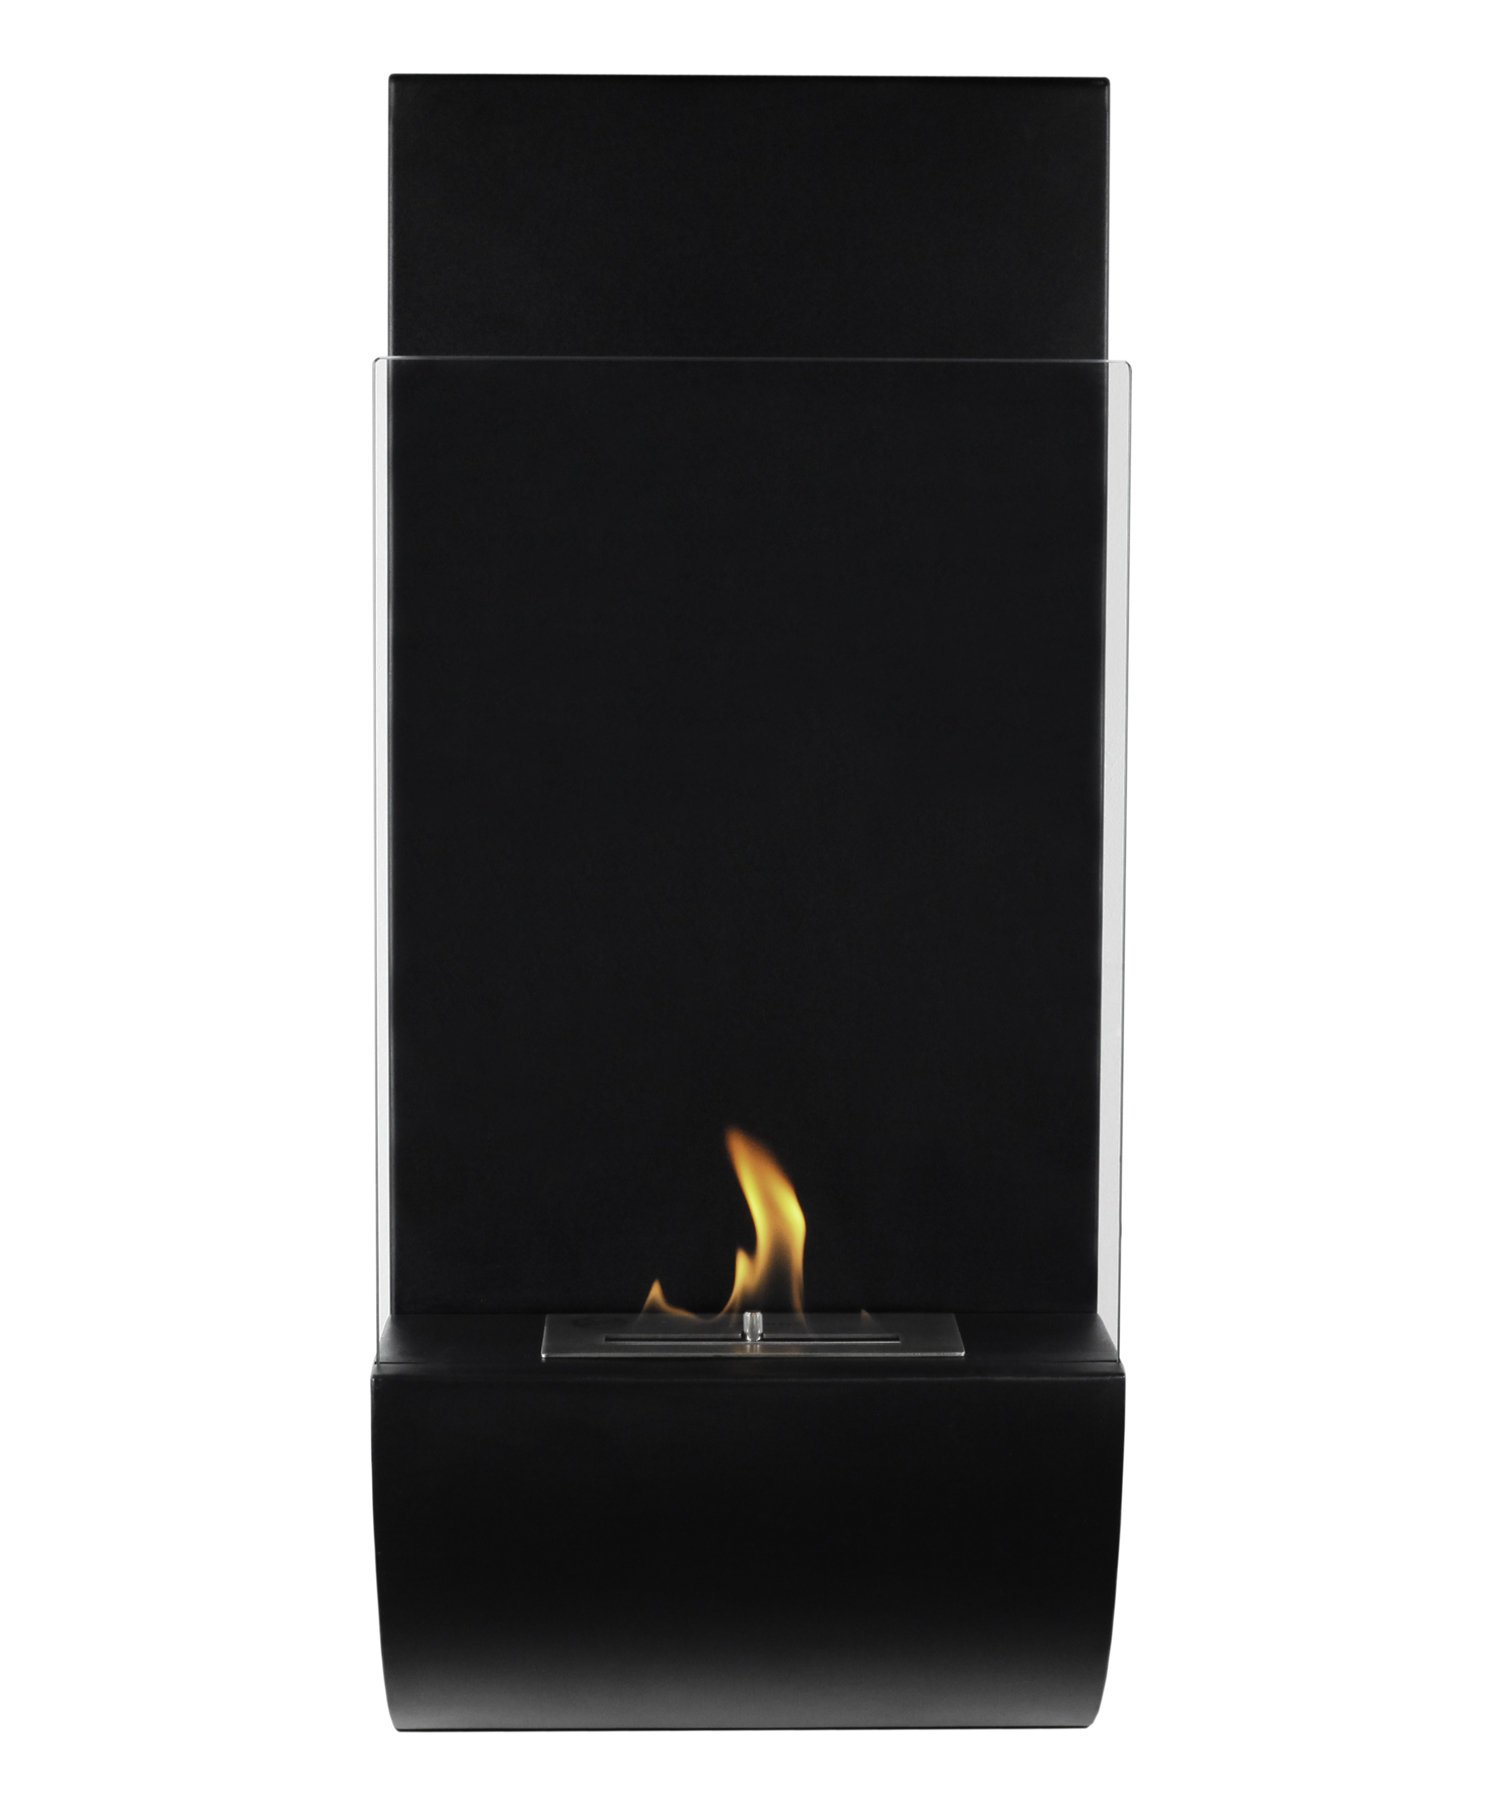 Ethanol Wall Mounted Fireplace Awesome torcia Wall Mounted Ethanol Fireplace